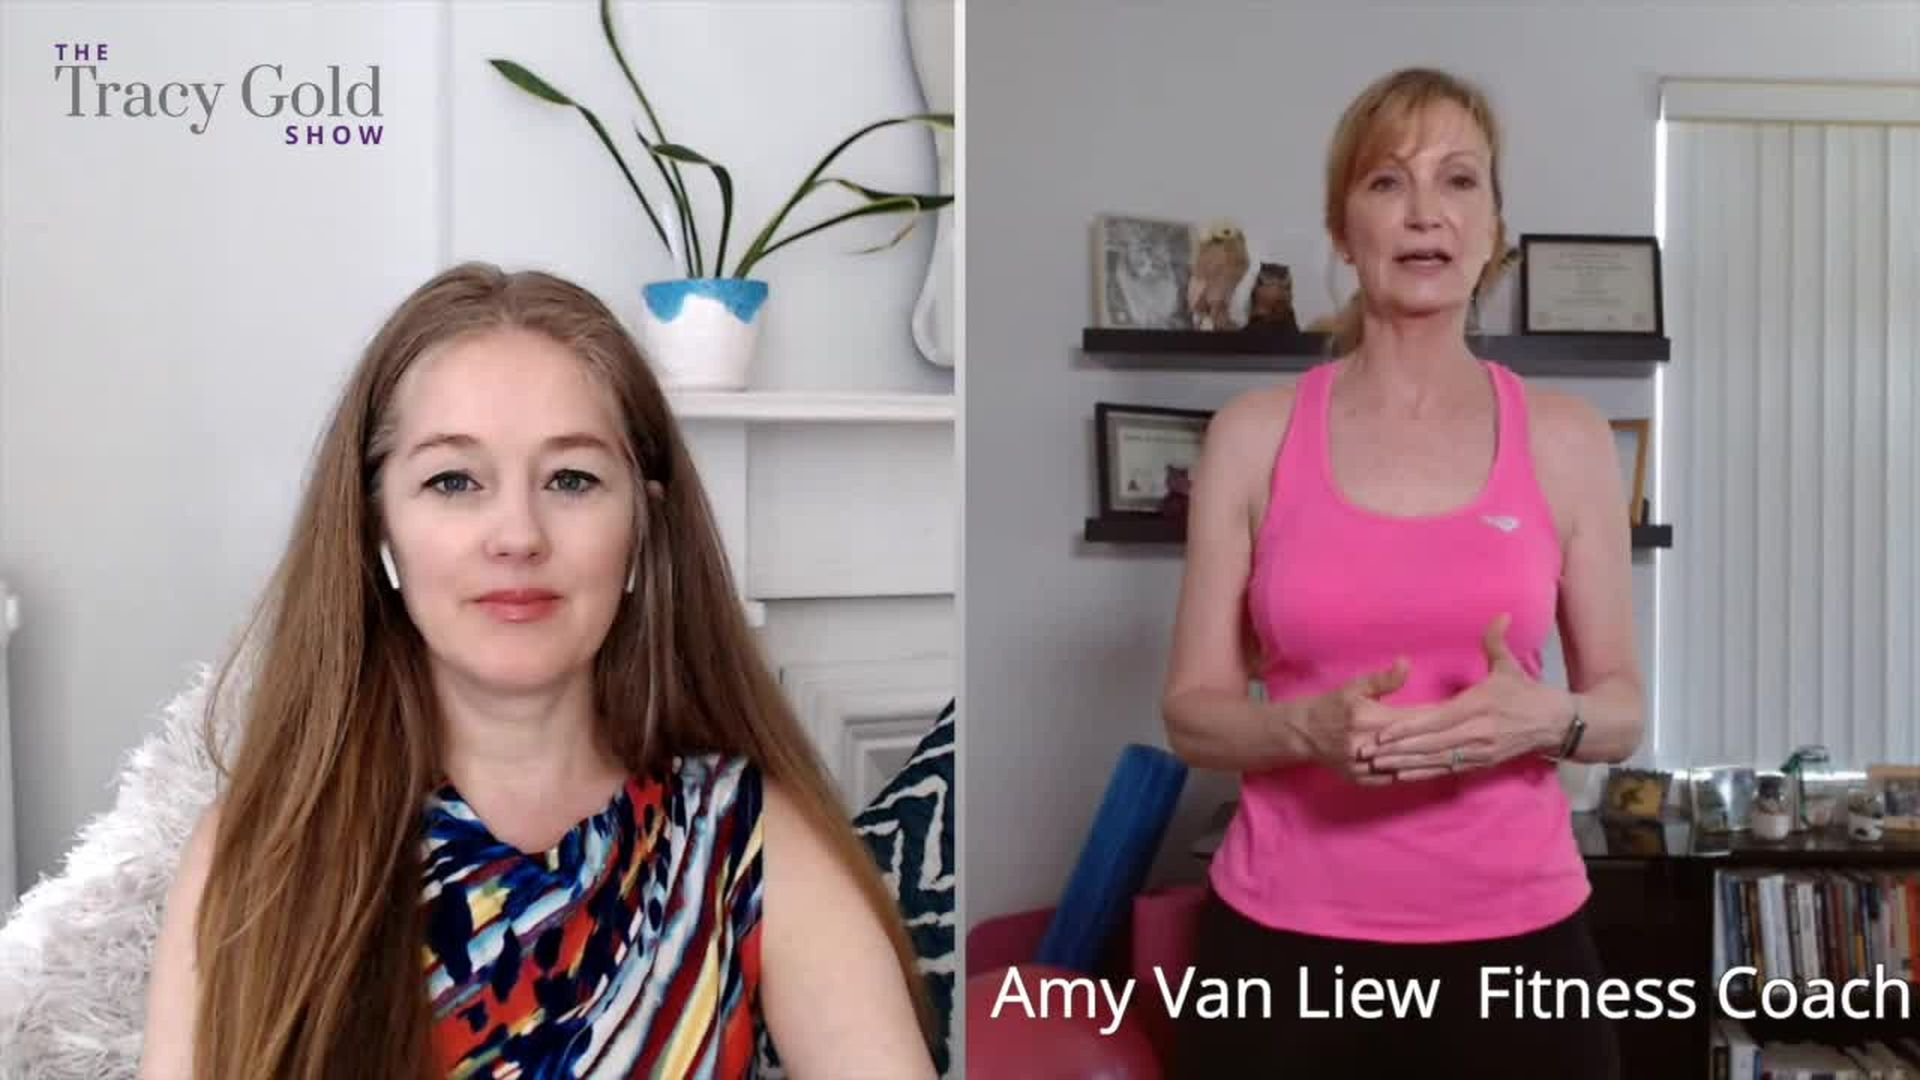 How to Get Fit Over 50 With Amy Van Liew Part 1 - Tracy Gold Show